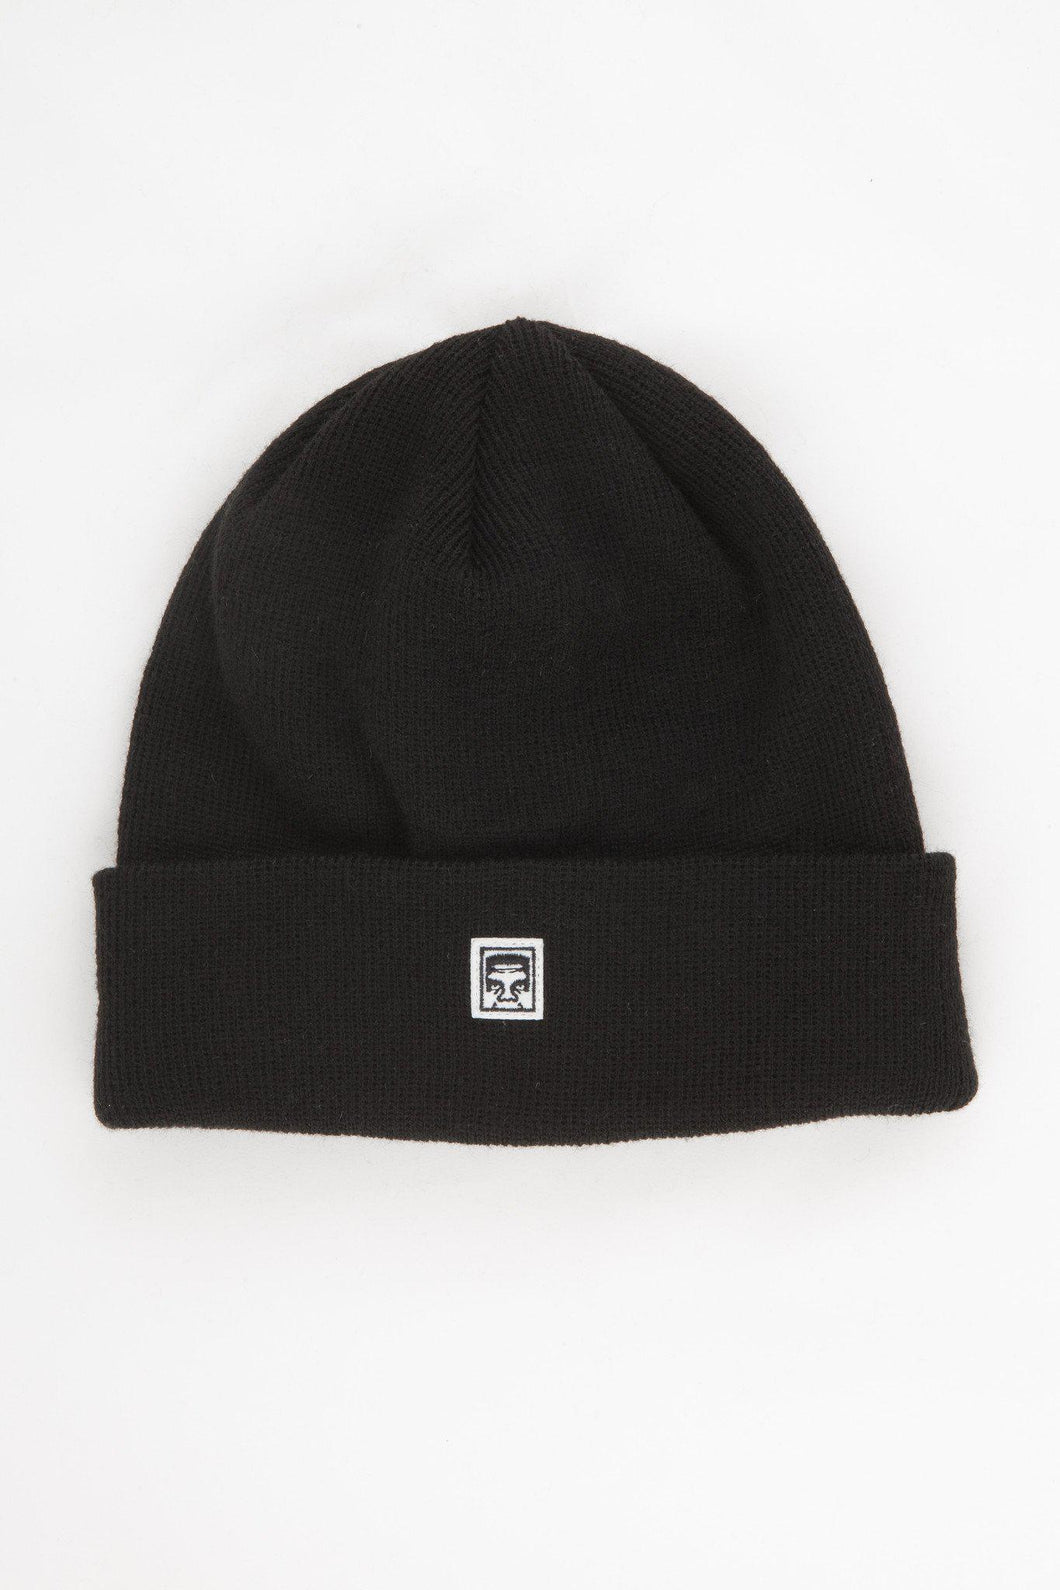 OBEY EIGHTY NINE BEANIE BLACK-The Collateral